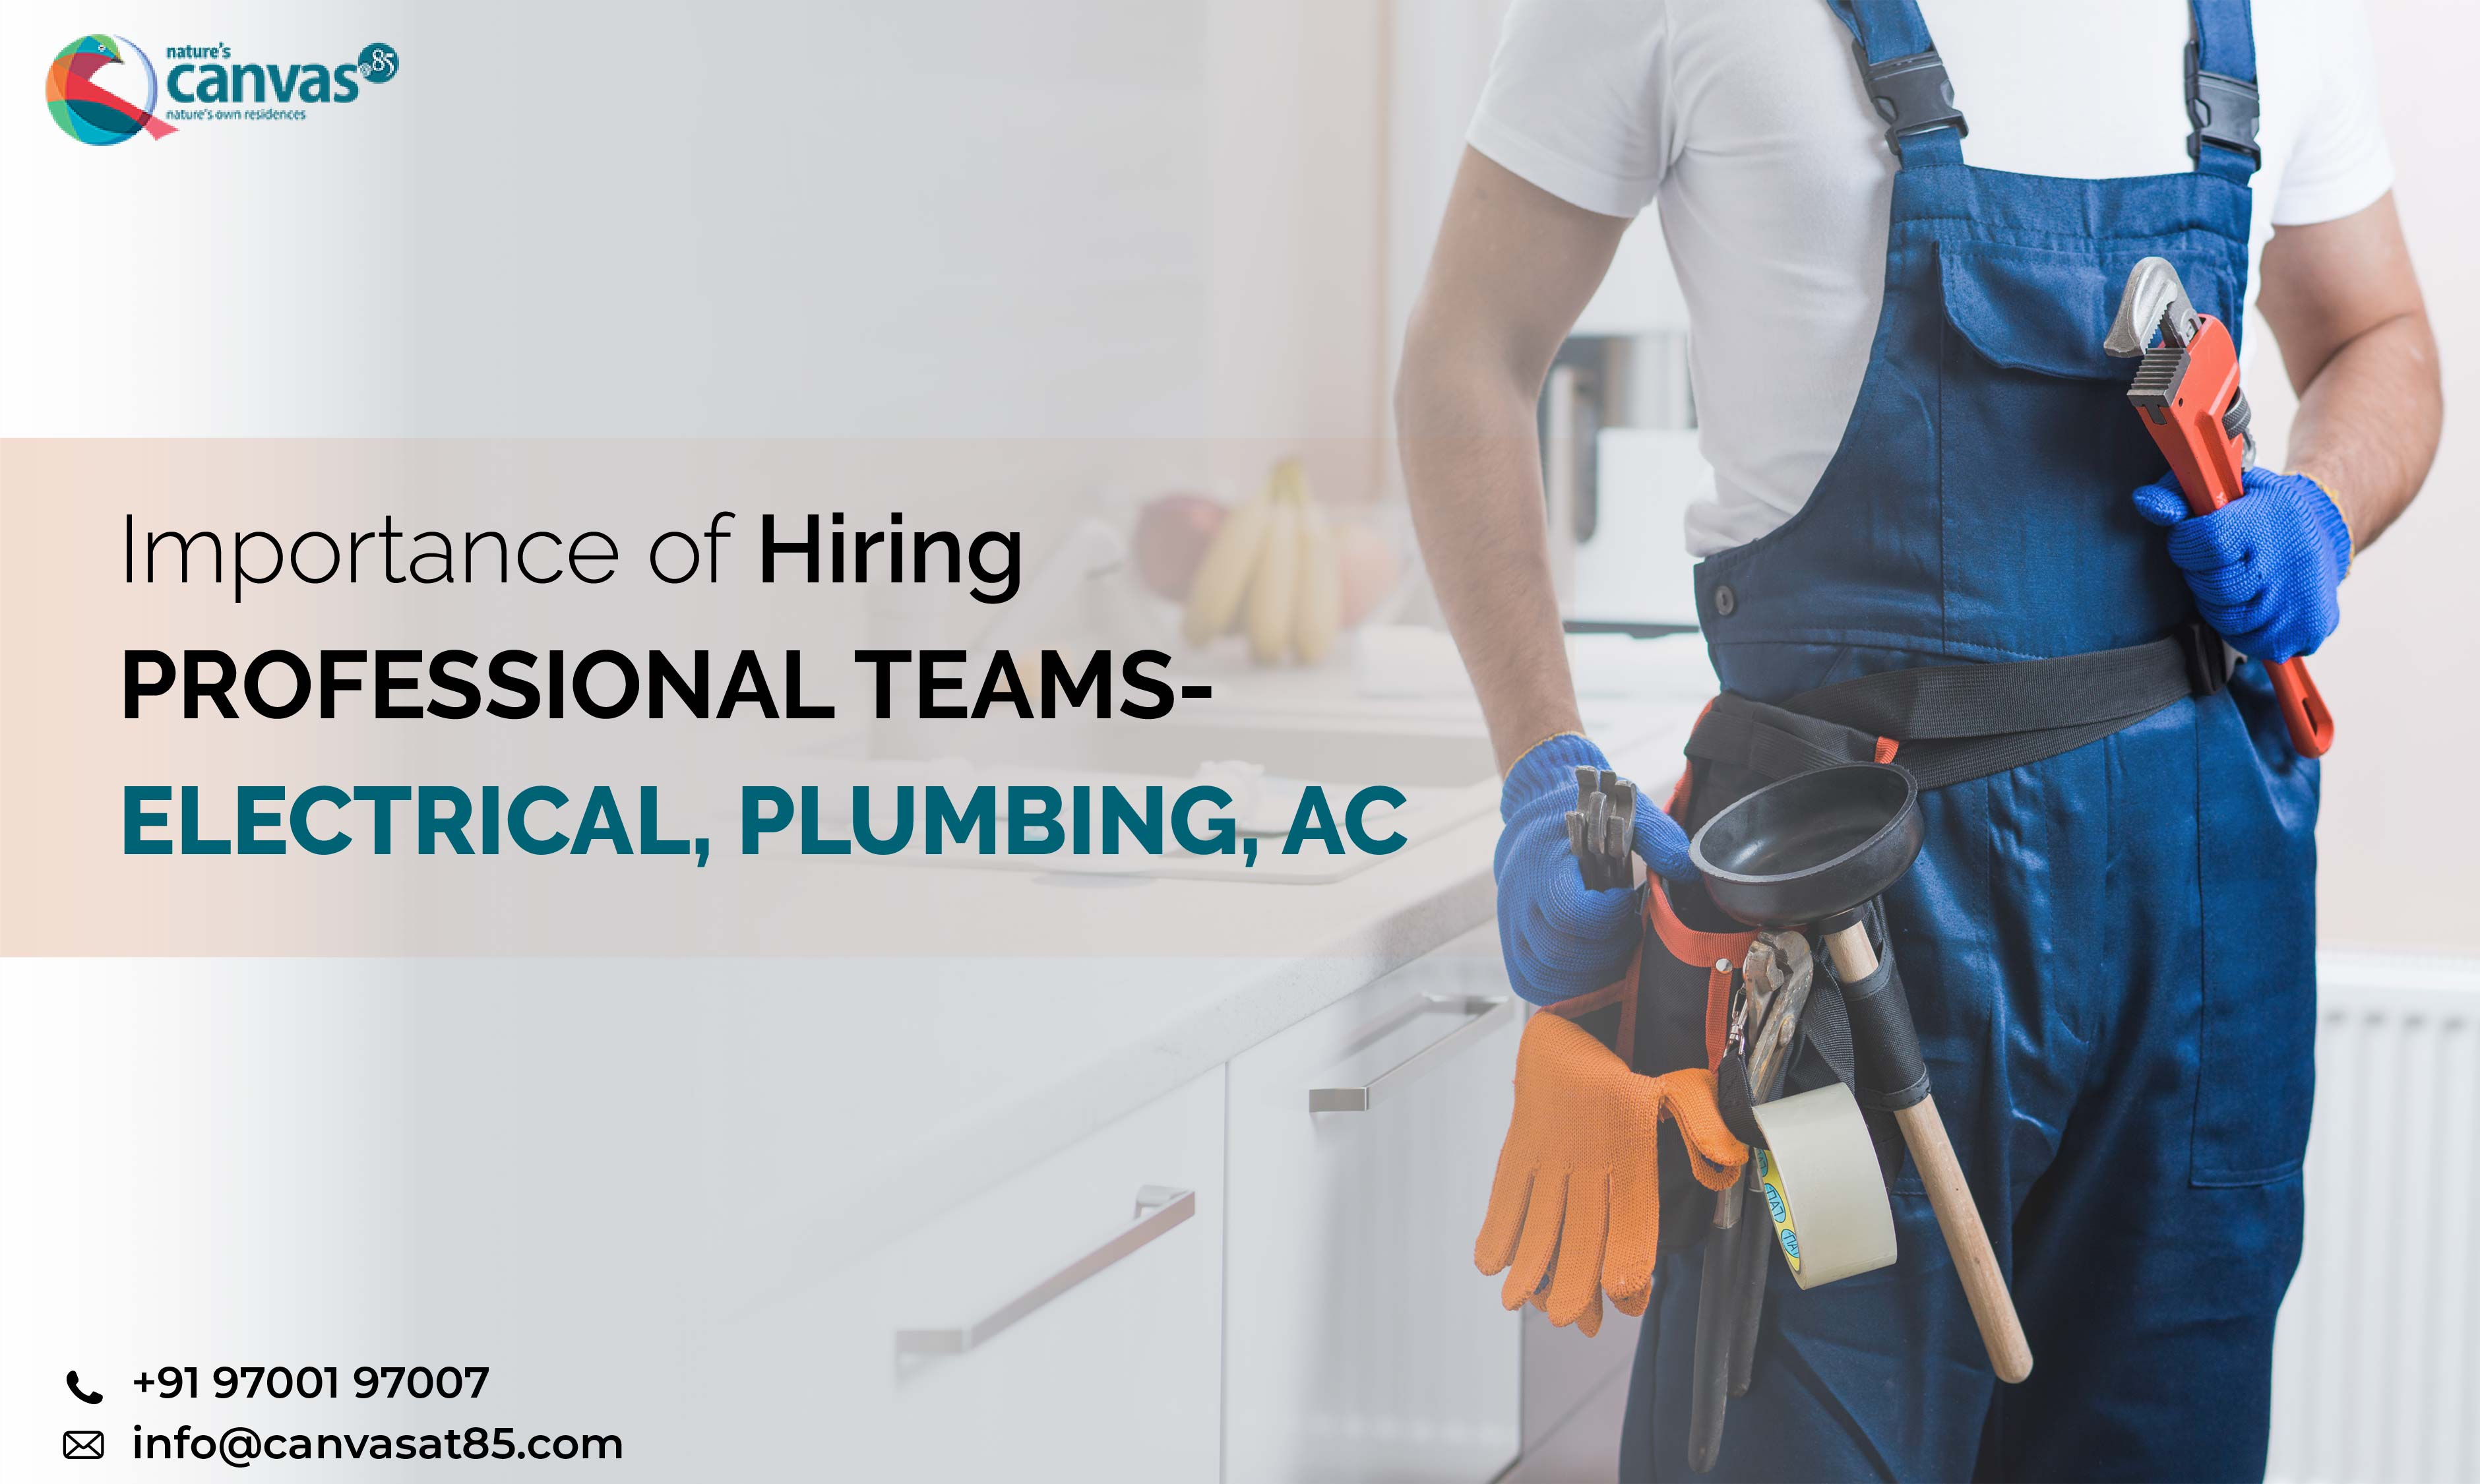 Importance of Hiring Professional Teams- Electrical, Plumbing, AC